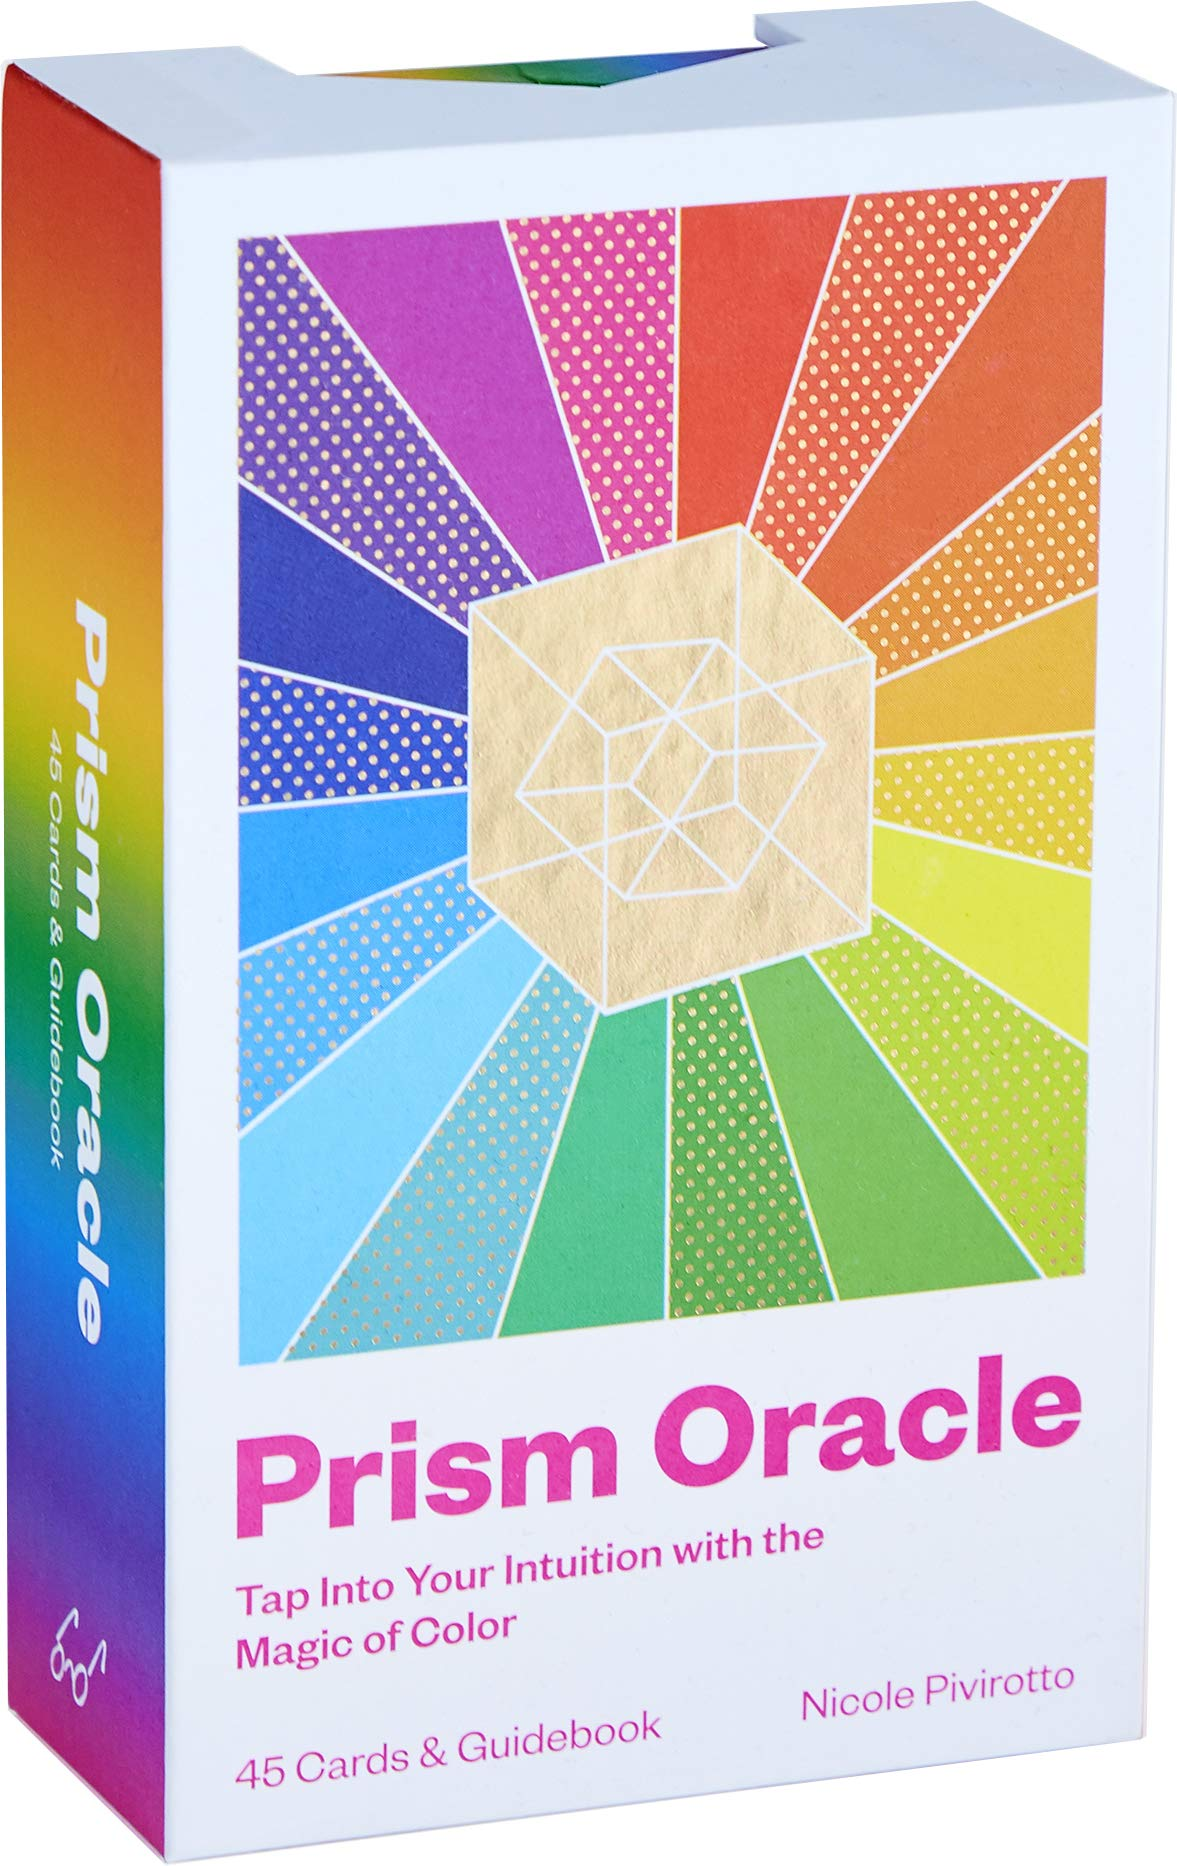 Prism Oracle: Tap into Your Intuition with the Magic of Color